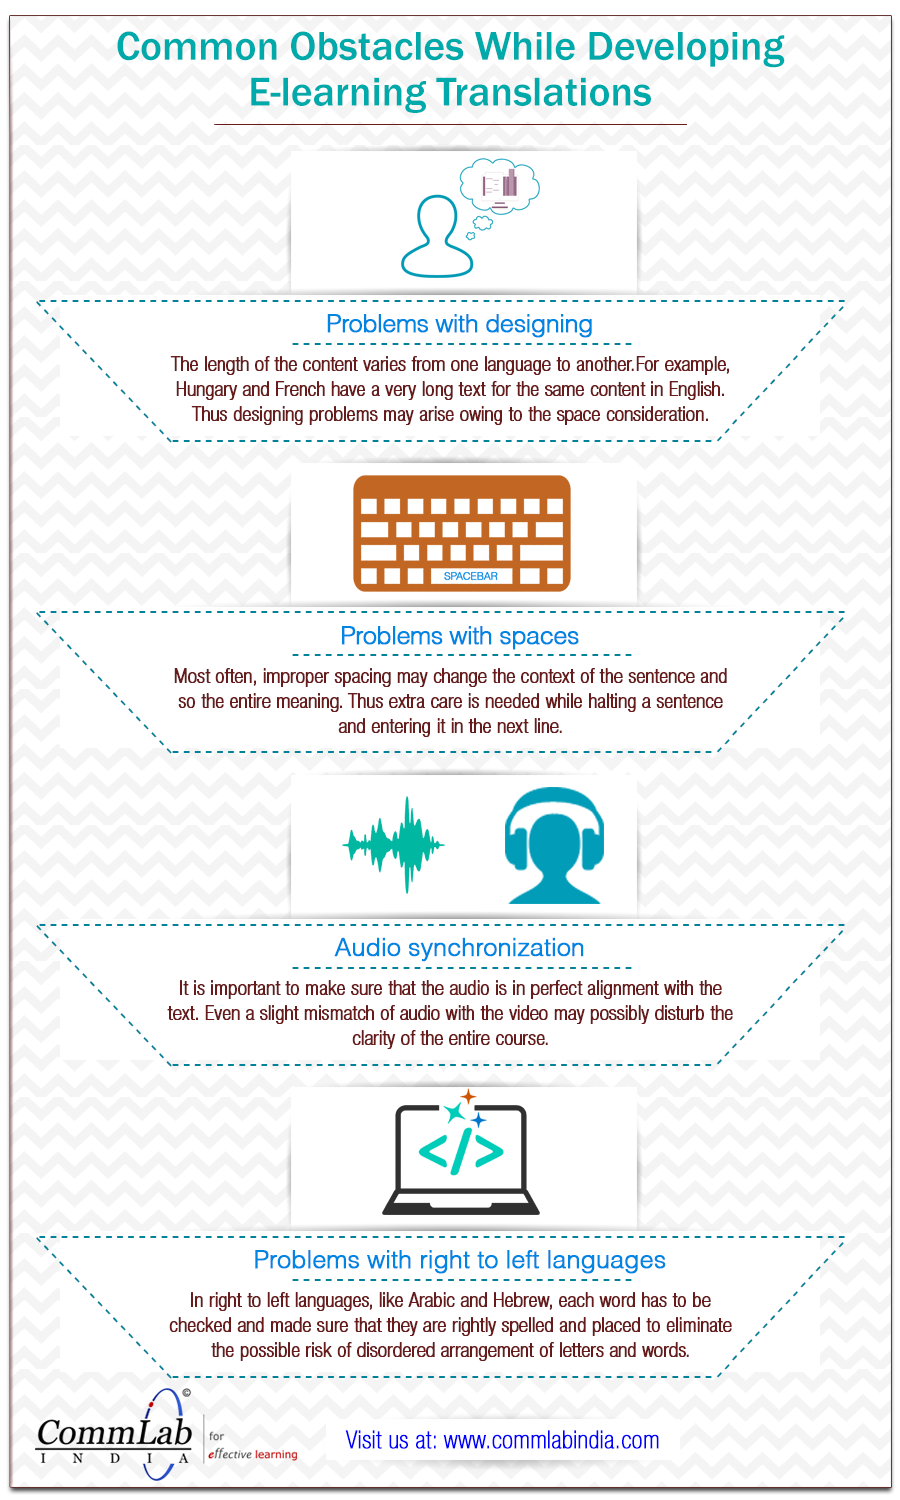 Common Problems Faced in Developing E-learning Translations – An Infographic